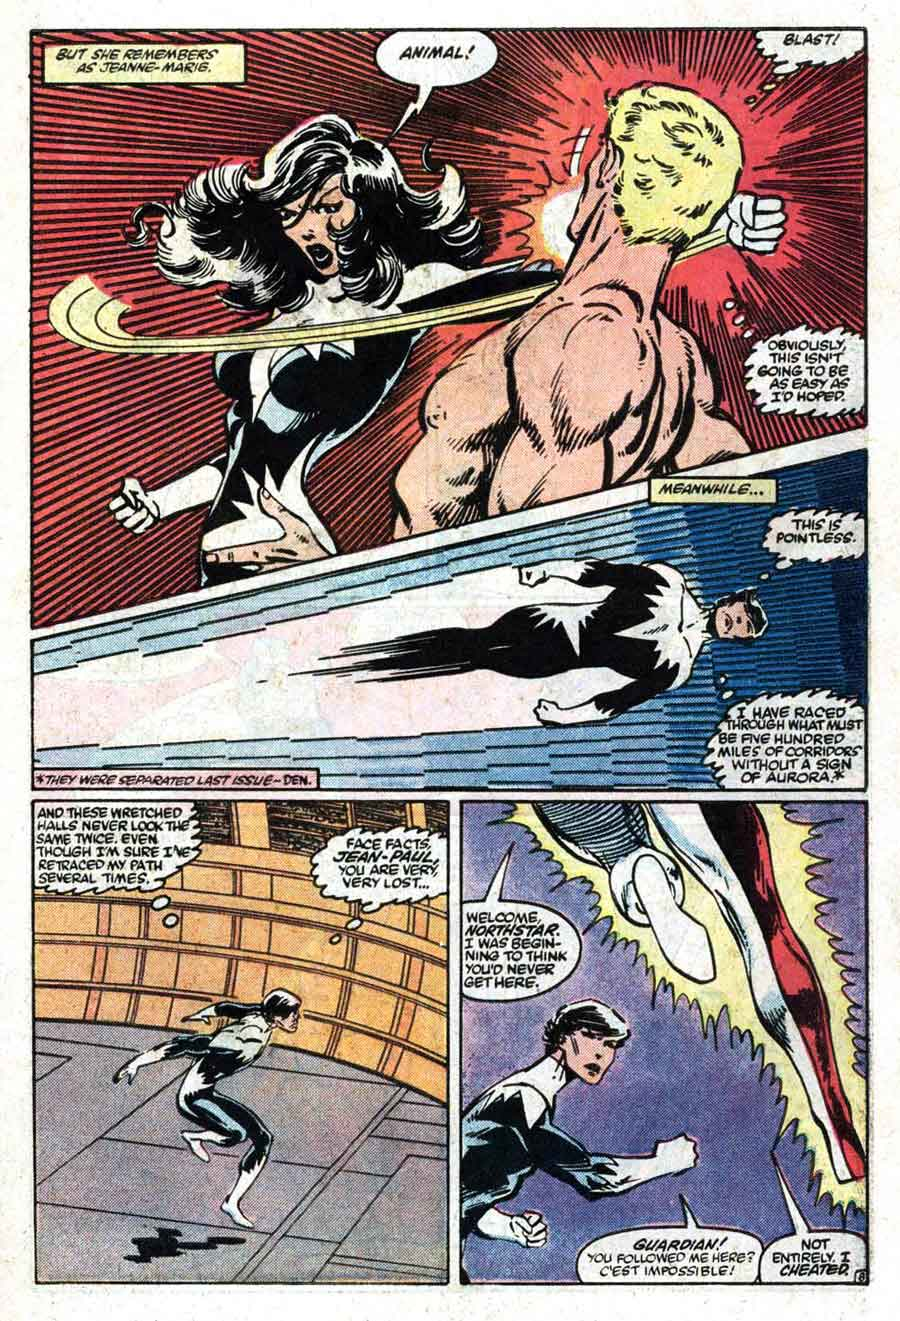 Alpha Flight v1 #4 marvel comic book page art by John Byrne